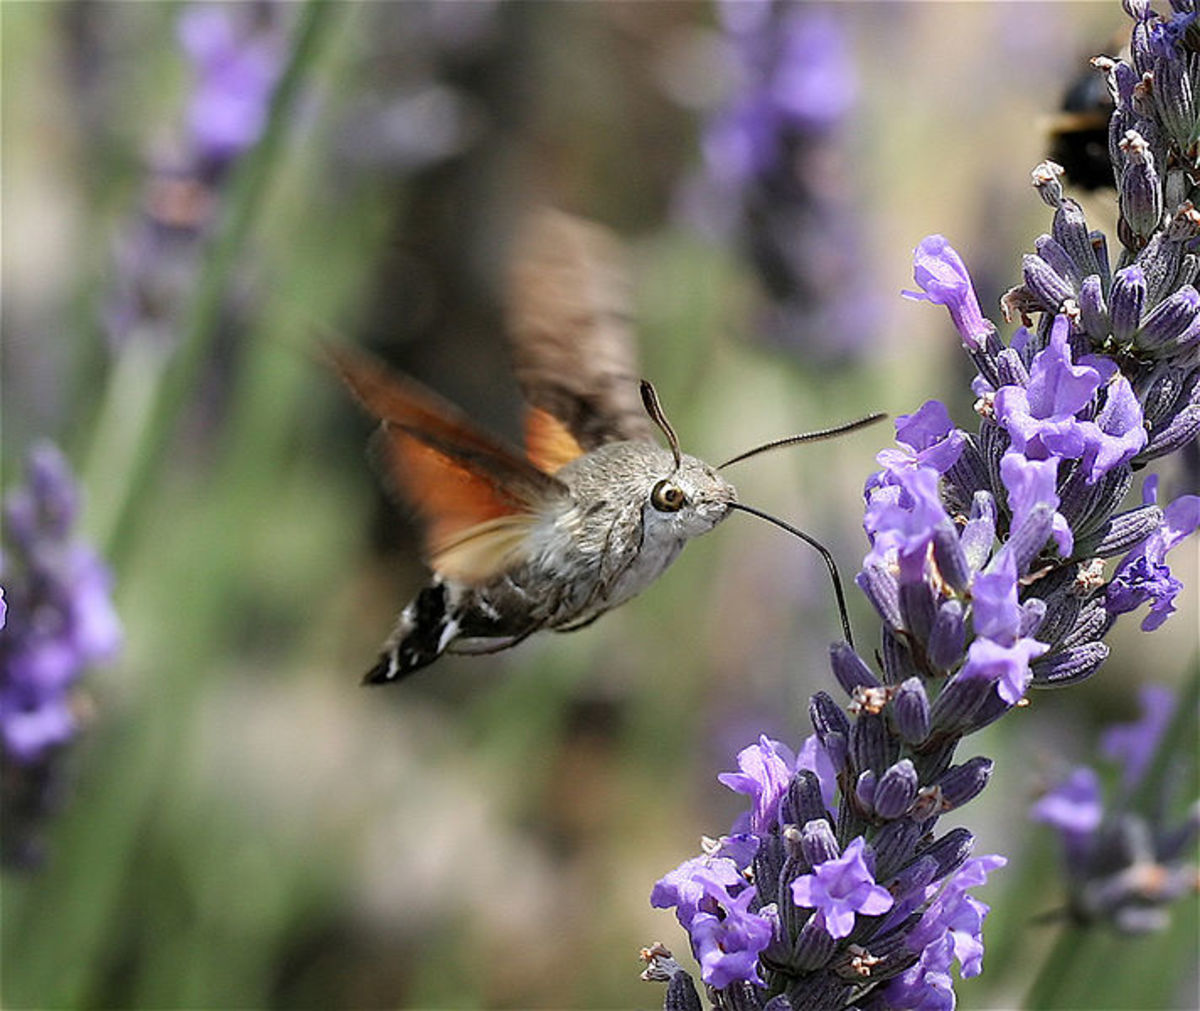 Hummingbird Hawk Moth feeding. Photo by IronChris